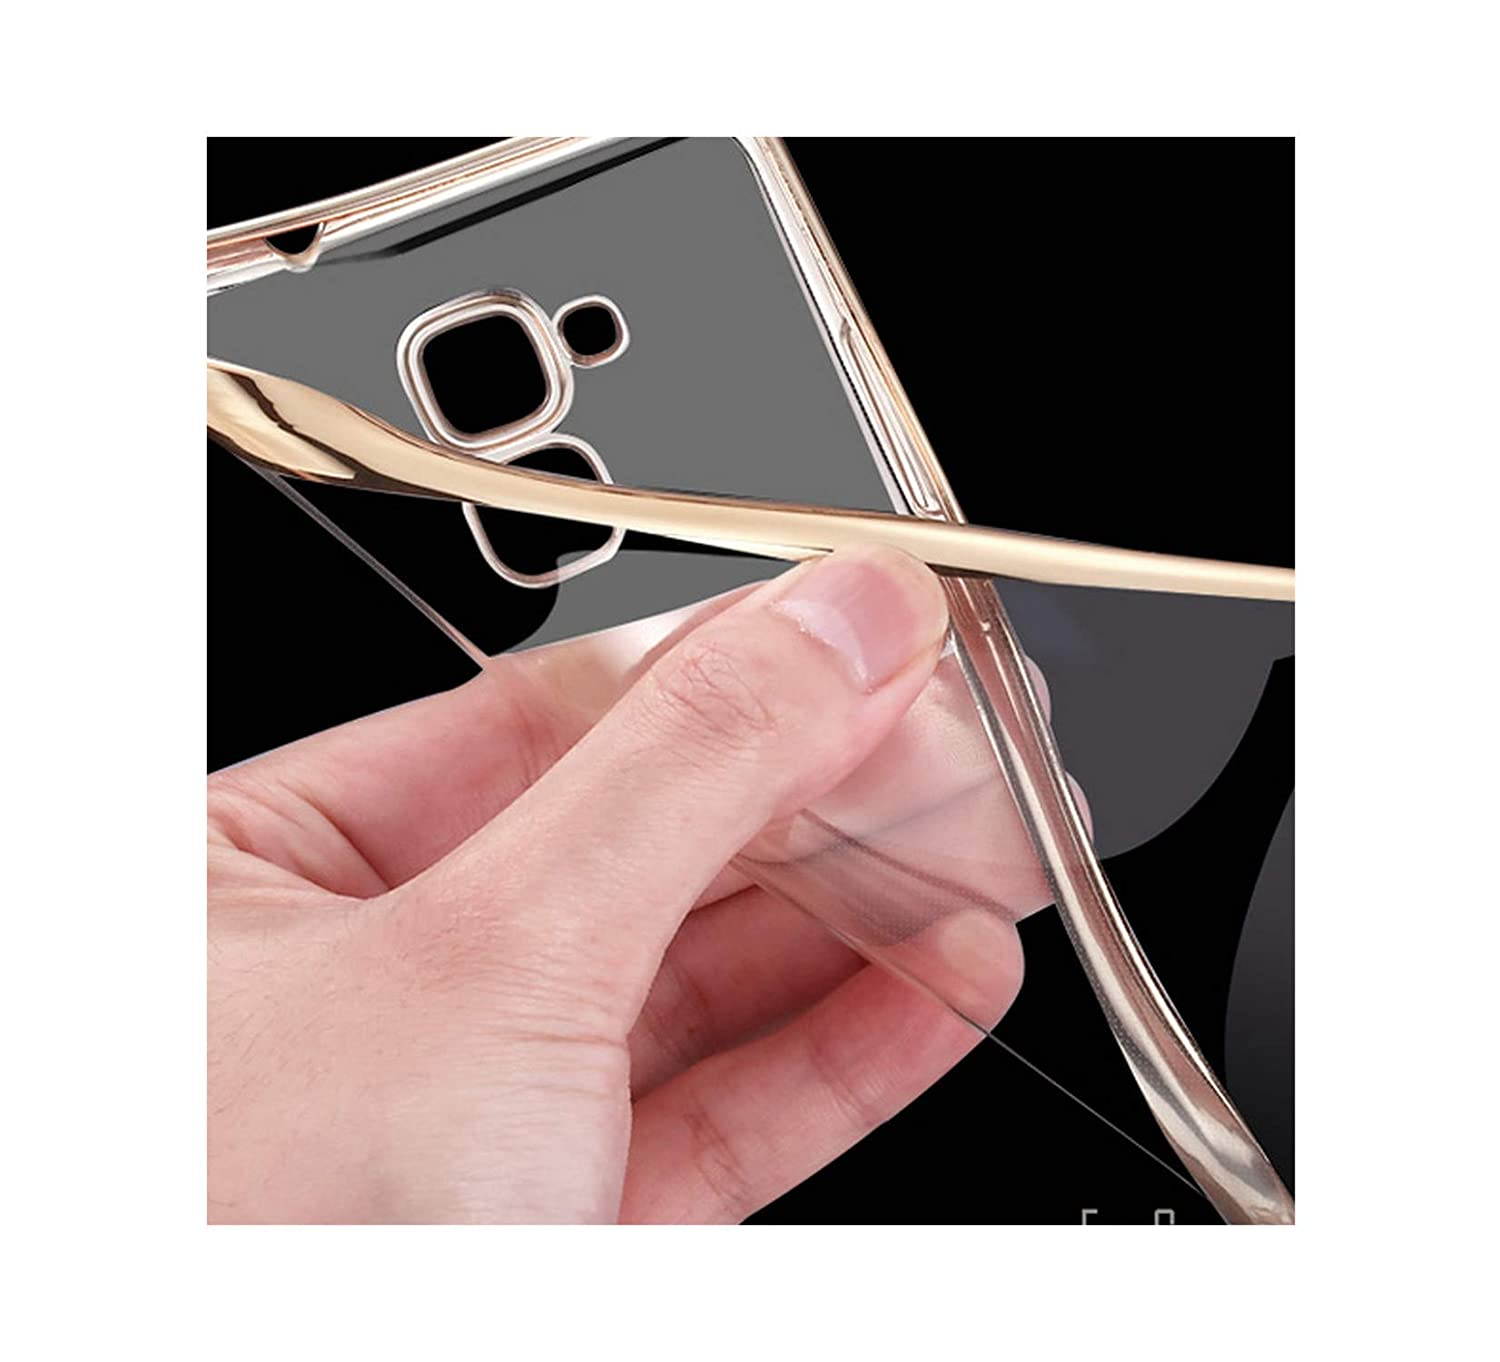 Amazon.com: Honor 5C Case Plating Crystal Soft TPU Clear ...